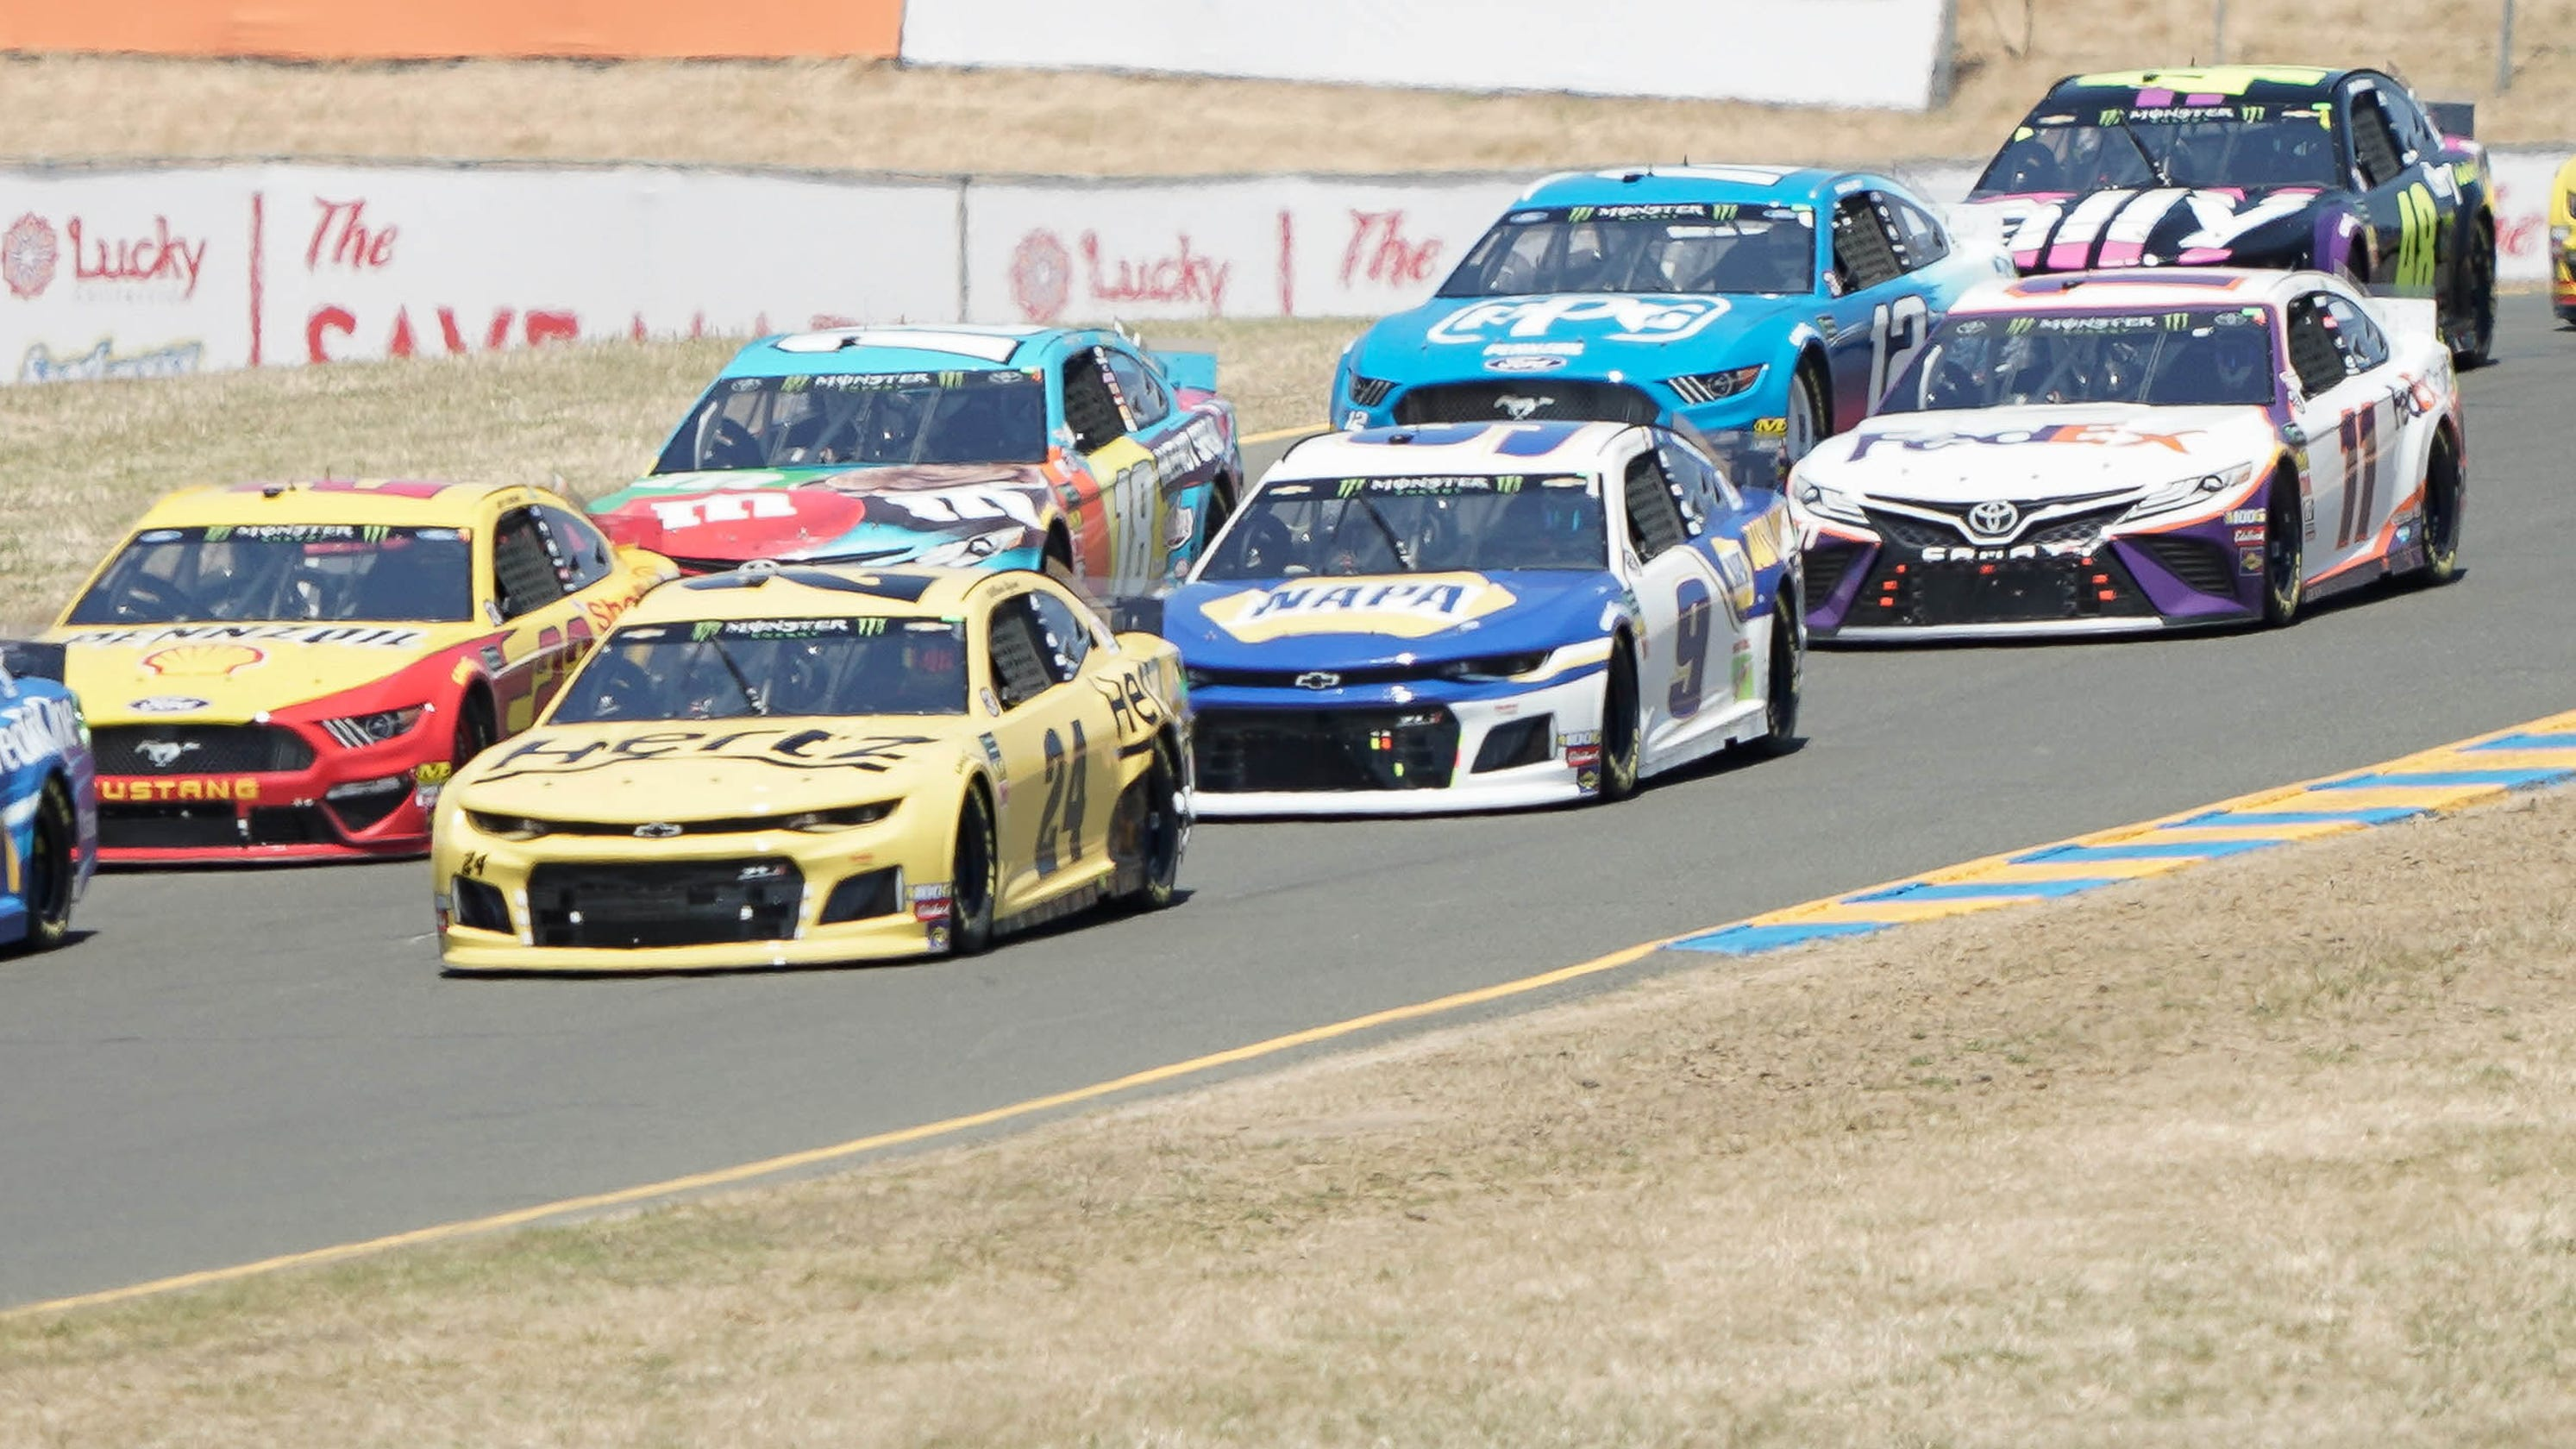 Authorities investigating apparent noose incident at Sonoma Raceway